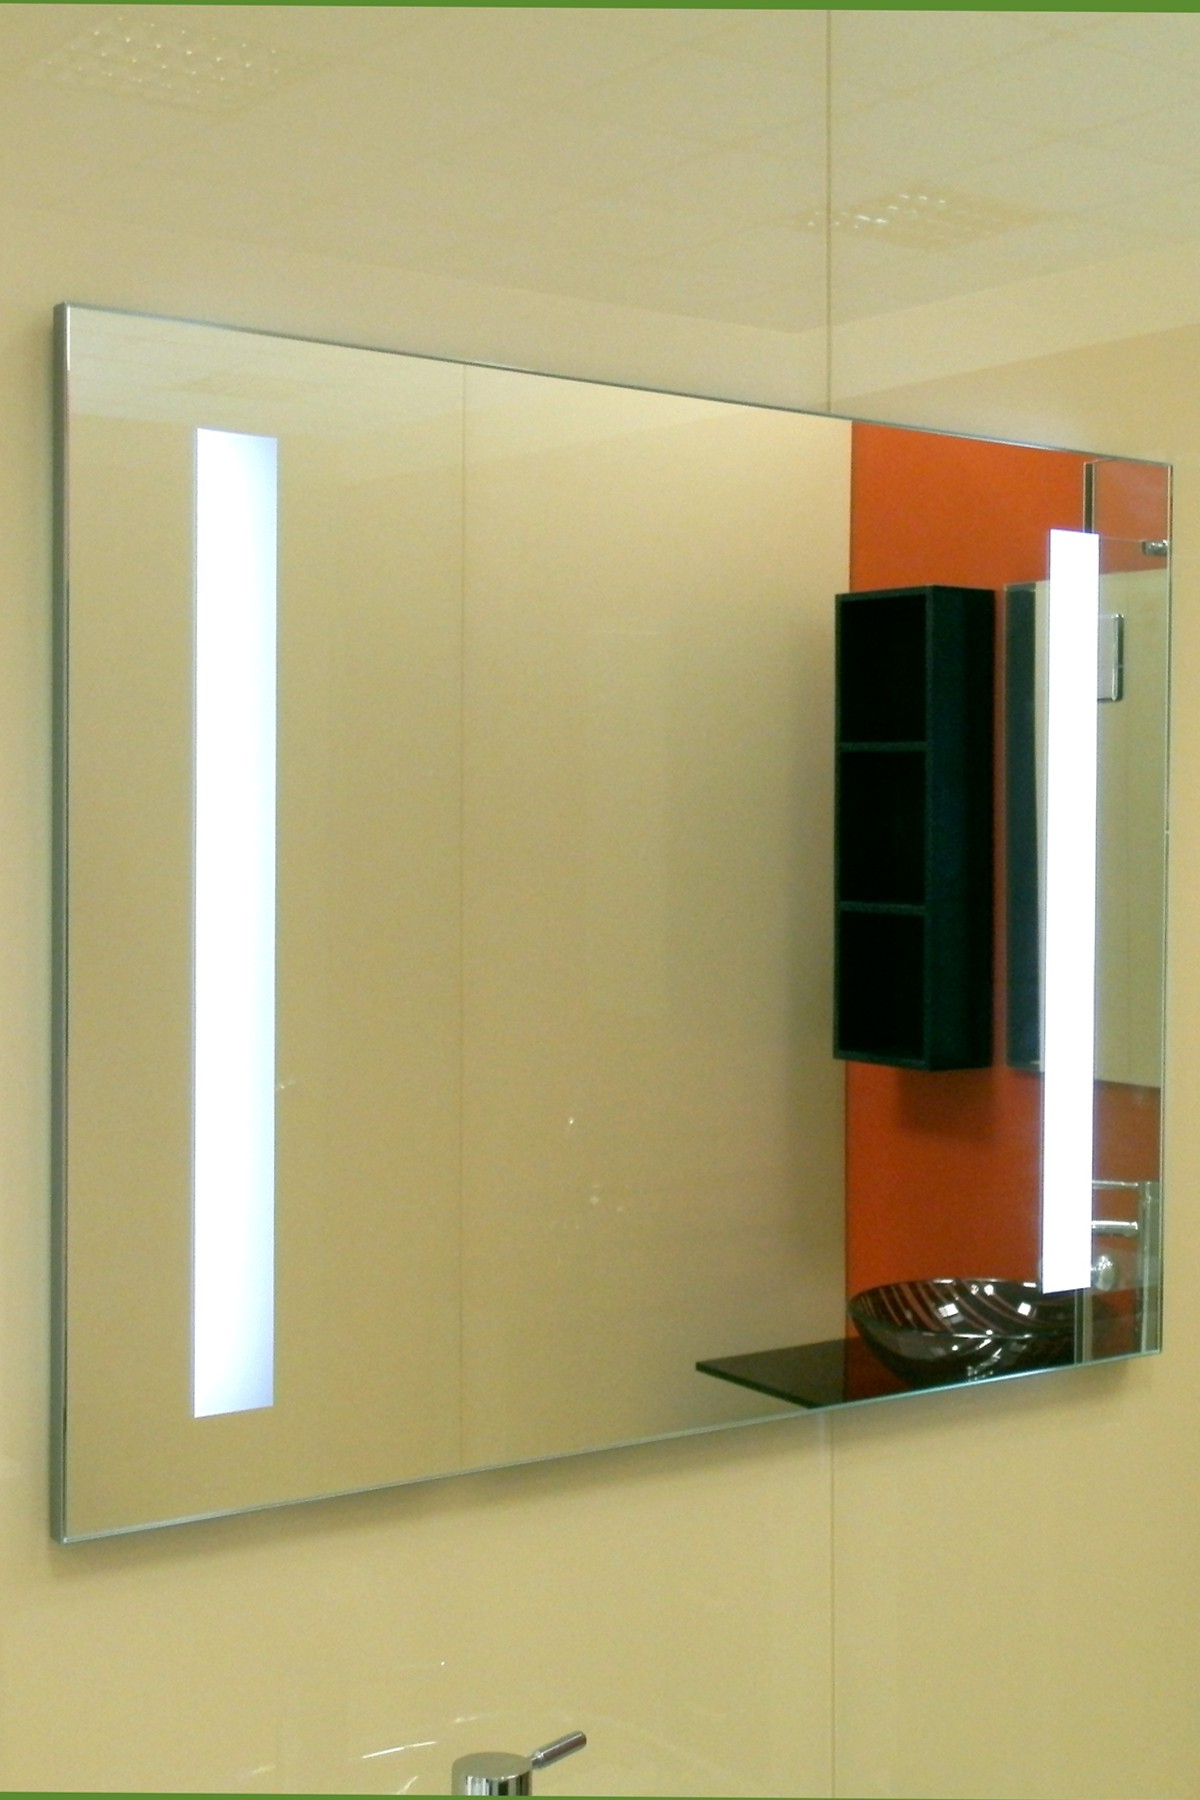 Lighted Wall Mirrors For Bathrooms Within Most Recently Released Lux Standard Hl Code: Hl 2105 (Gallery 15 of 20)